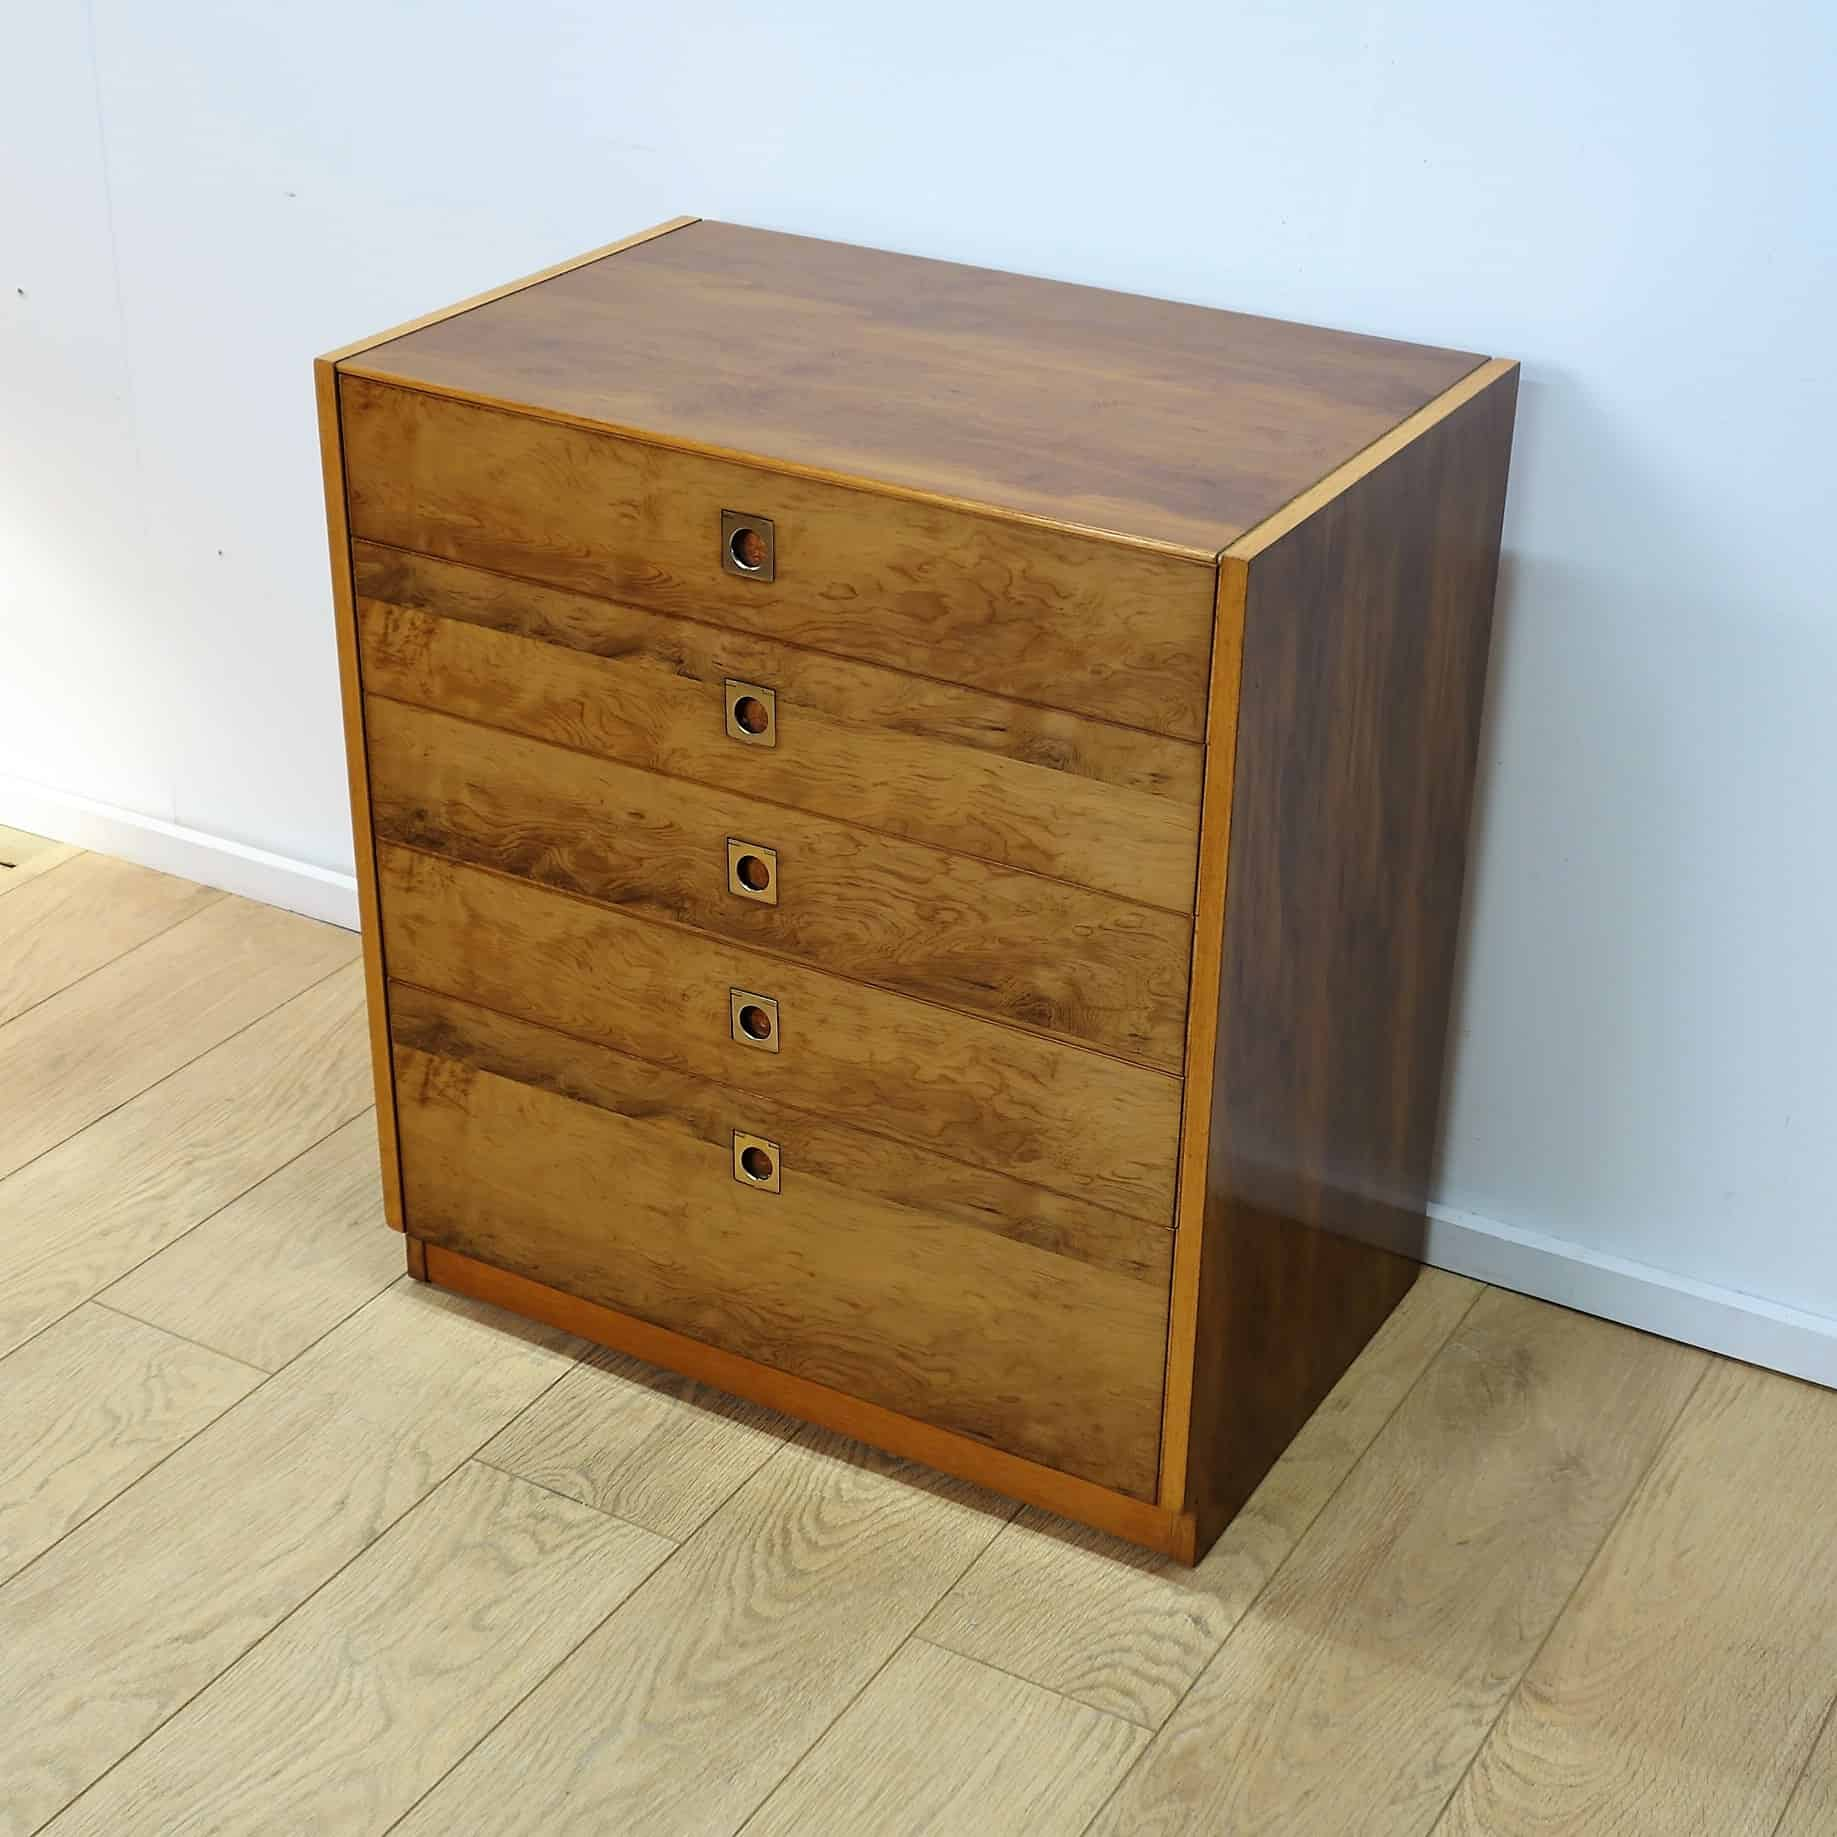 Yew chest of drawers by Robert Heritage